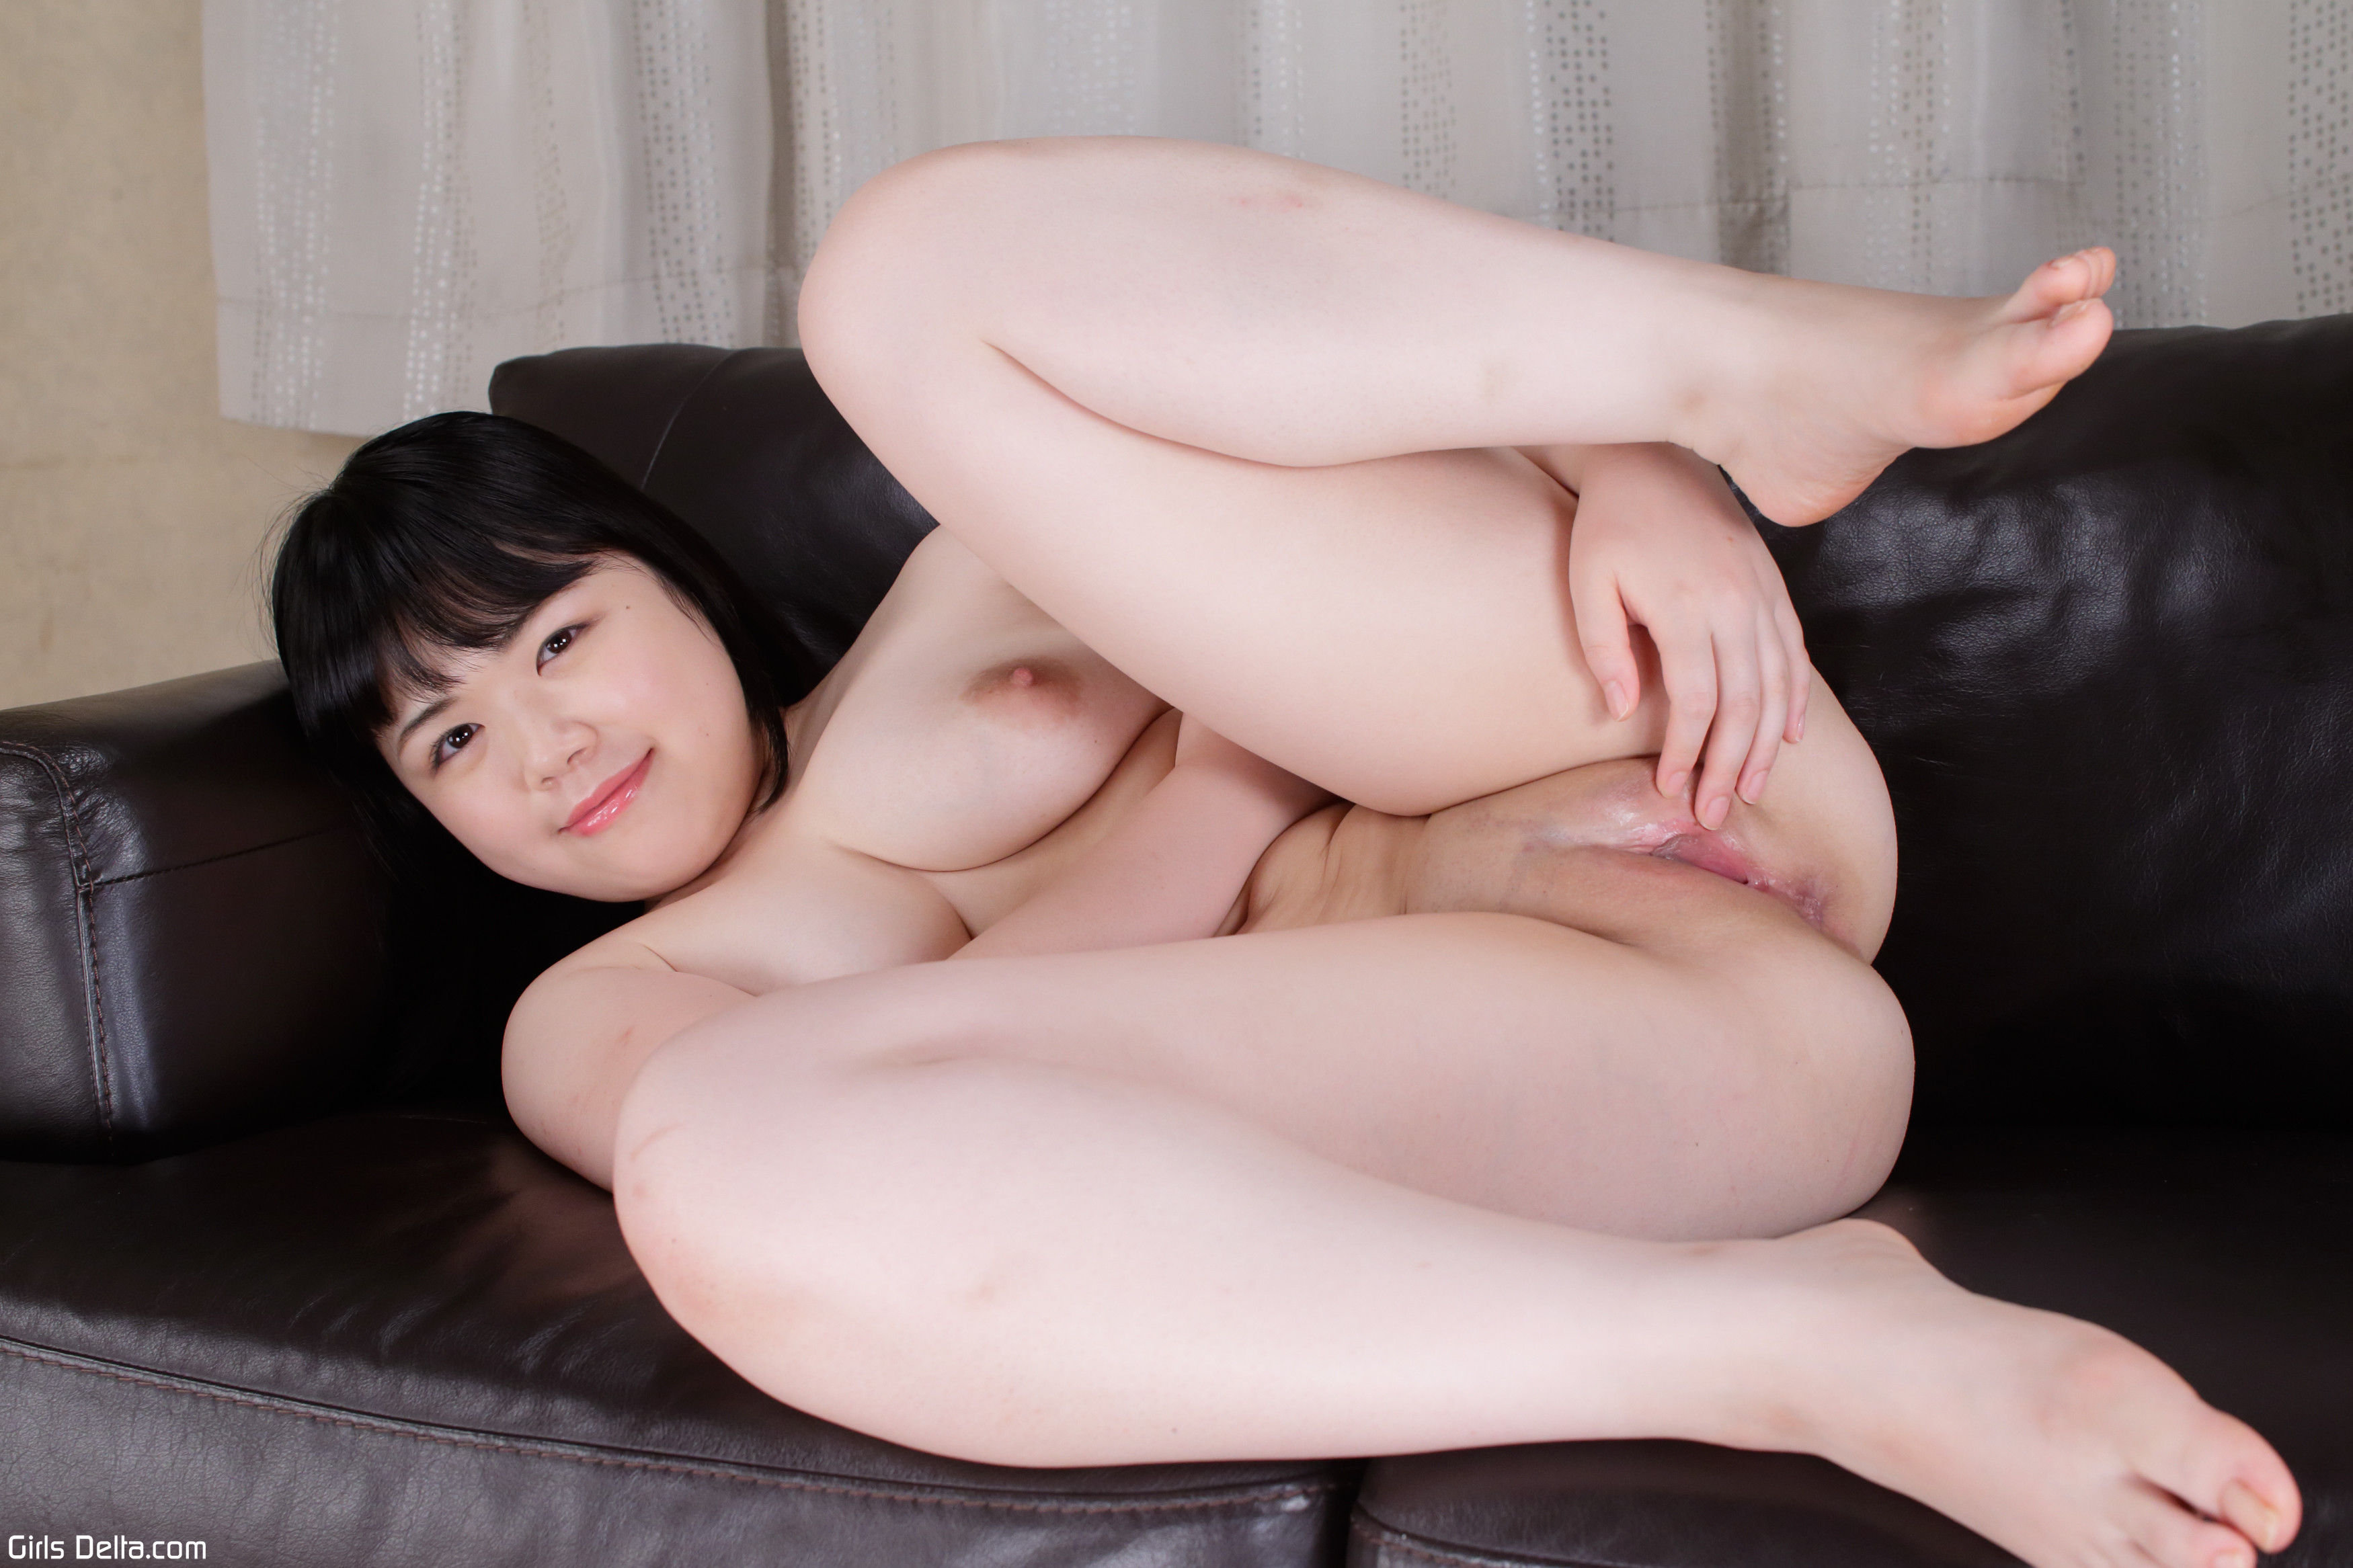 Was delta girls azumi nude reserve, neither more